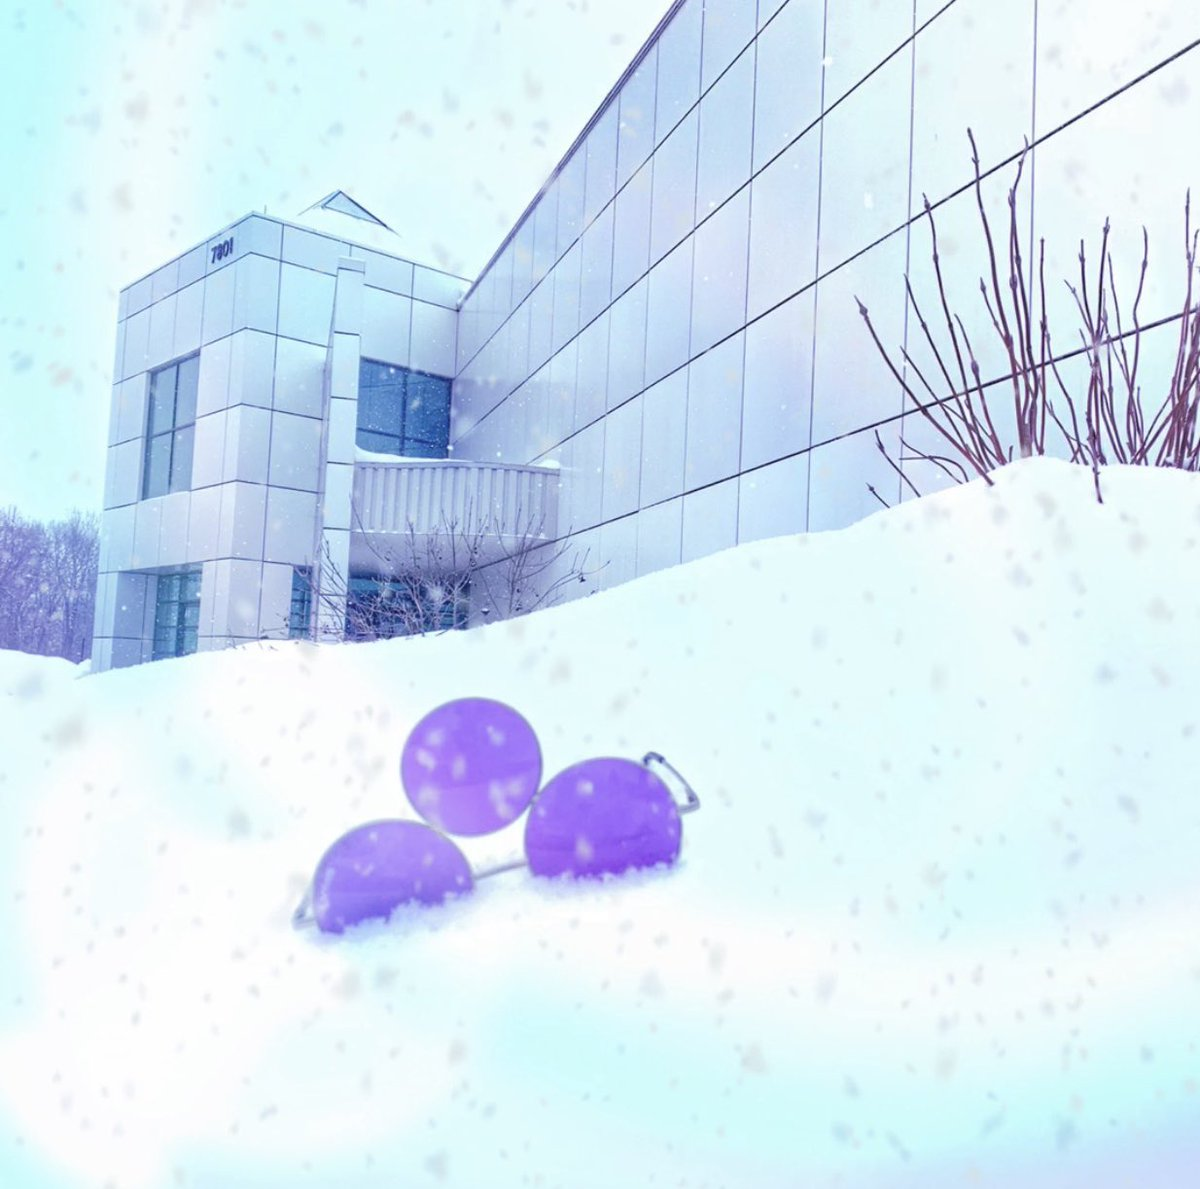 Sometimes it snows in April.. #Prince #Prince4Ever @PaisleyPark<br>http://pic.twitter.com/4hApYqRMrp